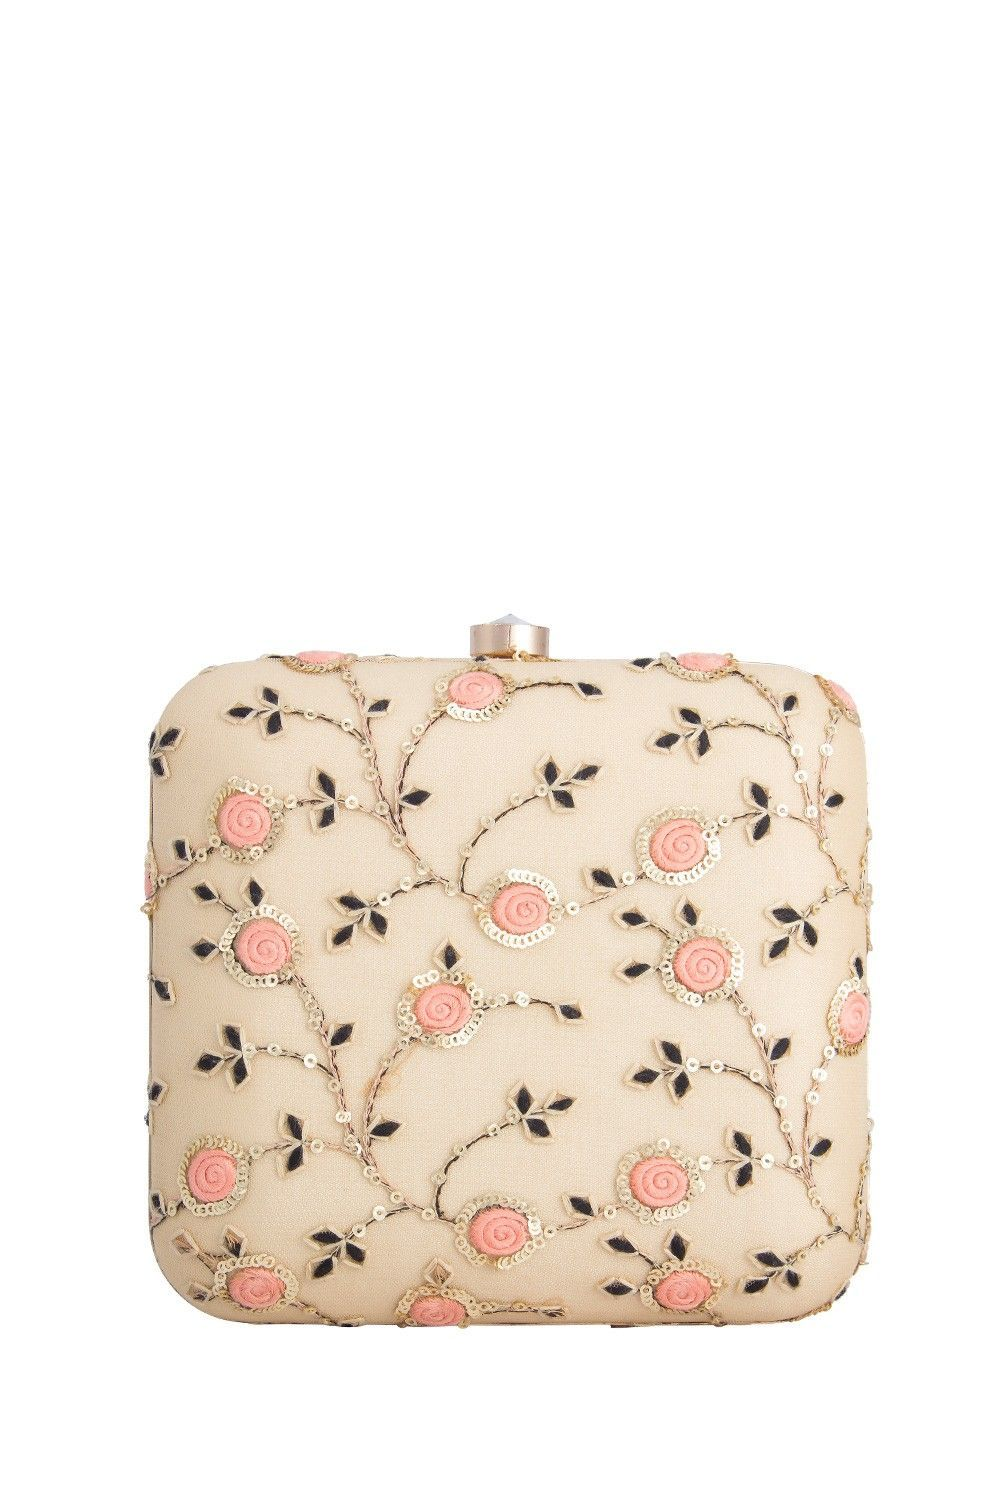 670b40787f198 Gold & Peach Embroidered Clutch #zardosiclutches | Clutches and ...